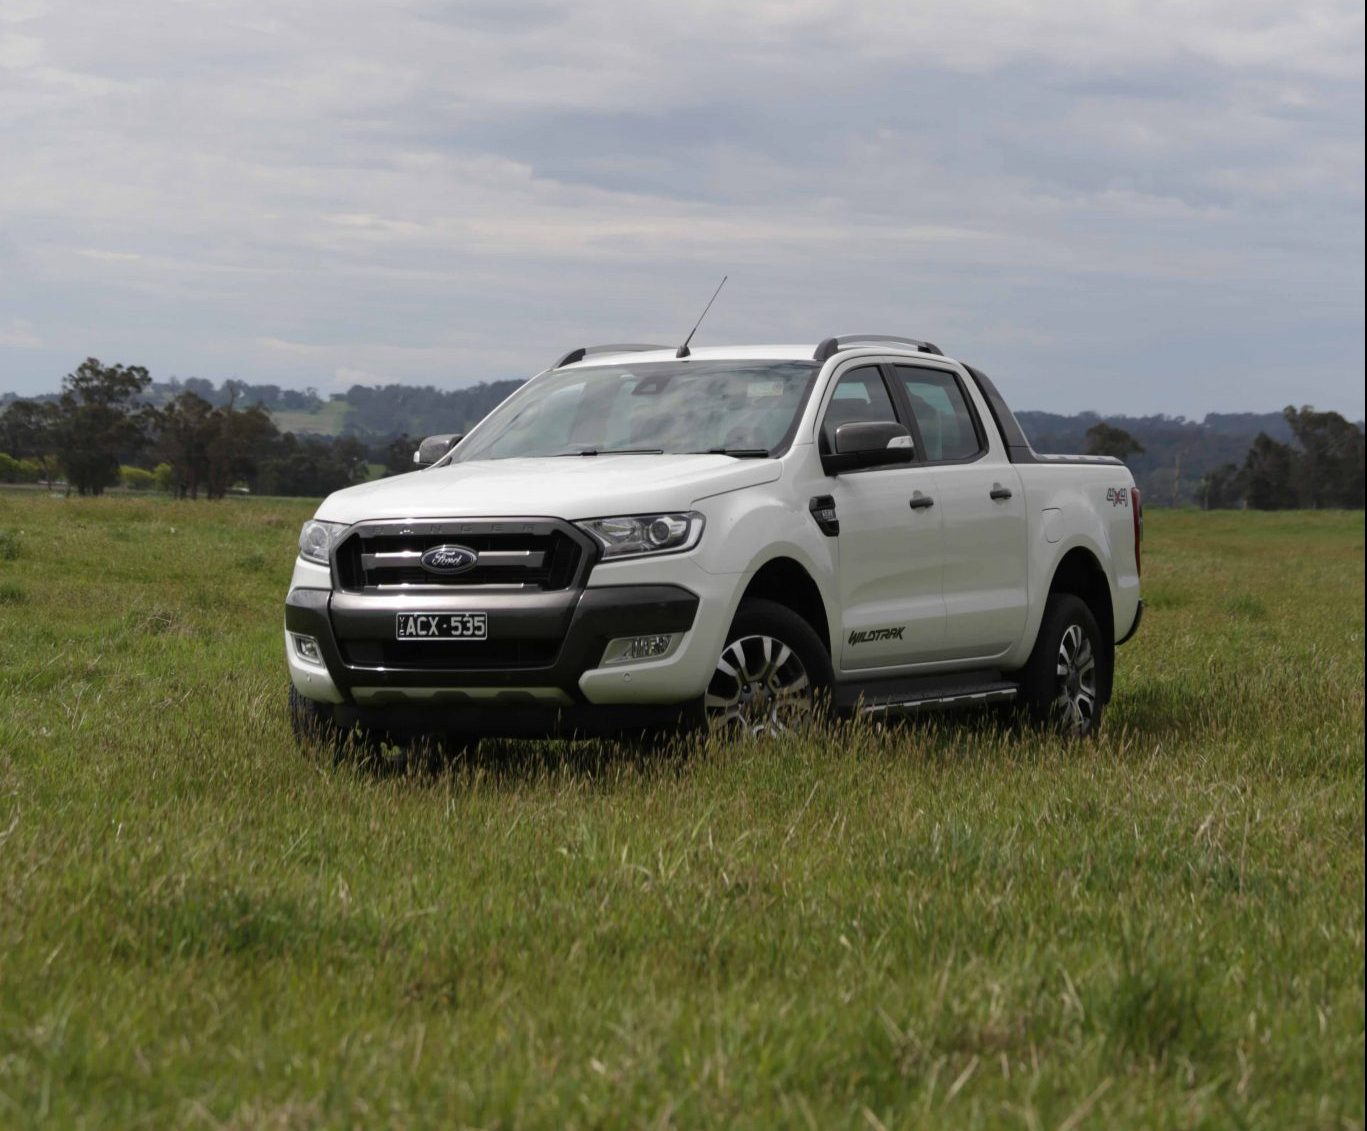 2019 Ford Ranger – What we know so far